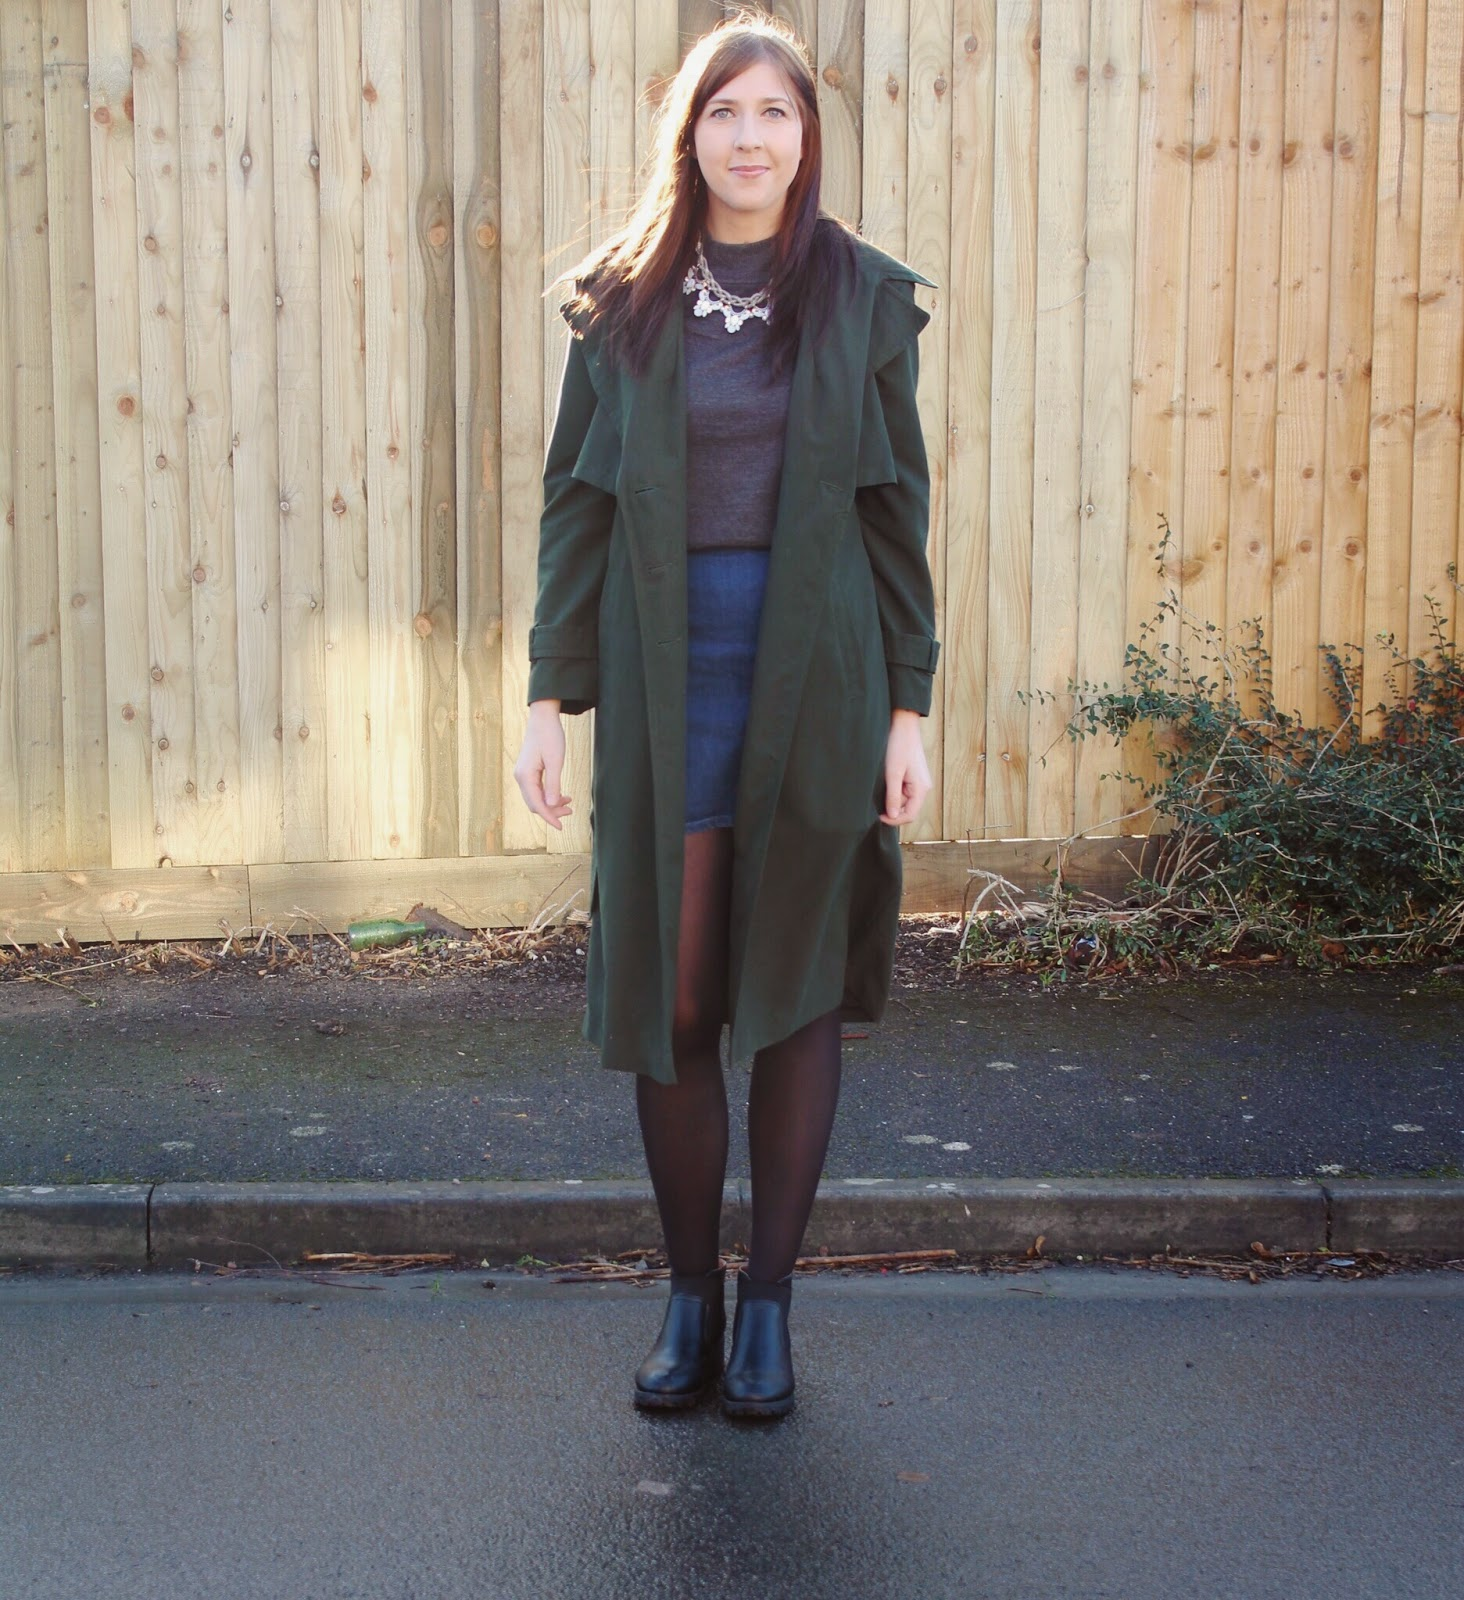 asseenonme, asos, primark, trenchcoat, wiw, whatimwearing, ootd, outfitoftheday, lotd, lookoftheday, alineskirt, denimskirt, rollneck, fbloggers, fblogger, fashionbloggers, fashion, chelseaboots, necklace,  halcyonevelvet